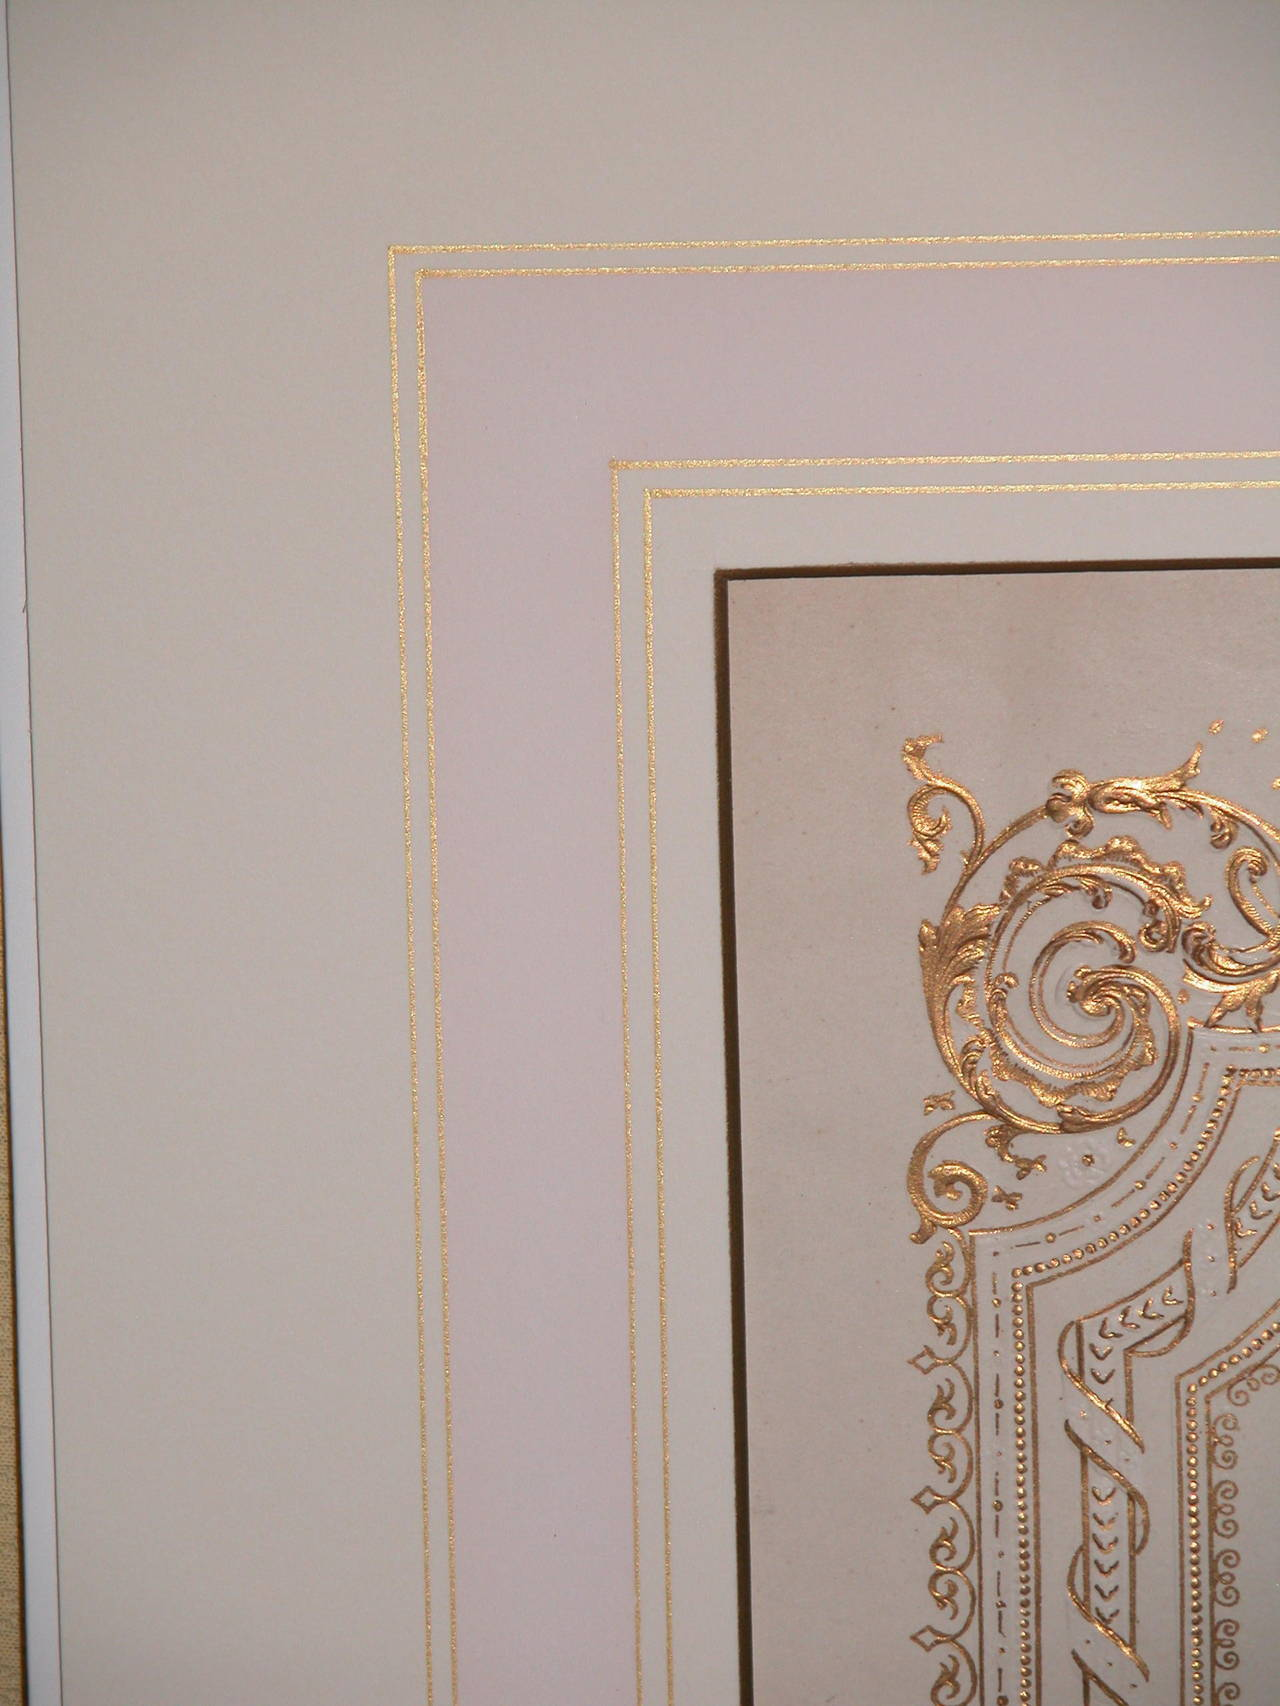 Exceptionally large and in near mint condition valentines day card in custom cut mat with pale pink and gold lines, ready for your frame. The actual valentine is 12.5